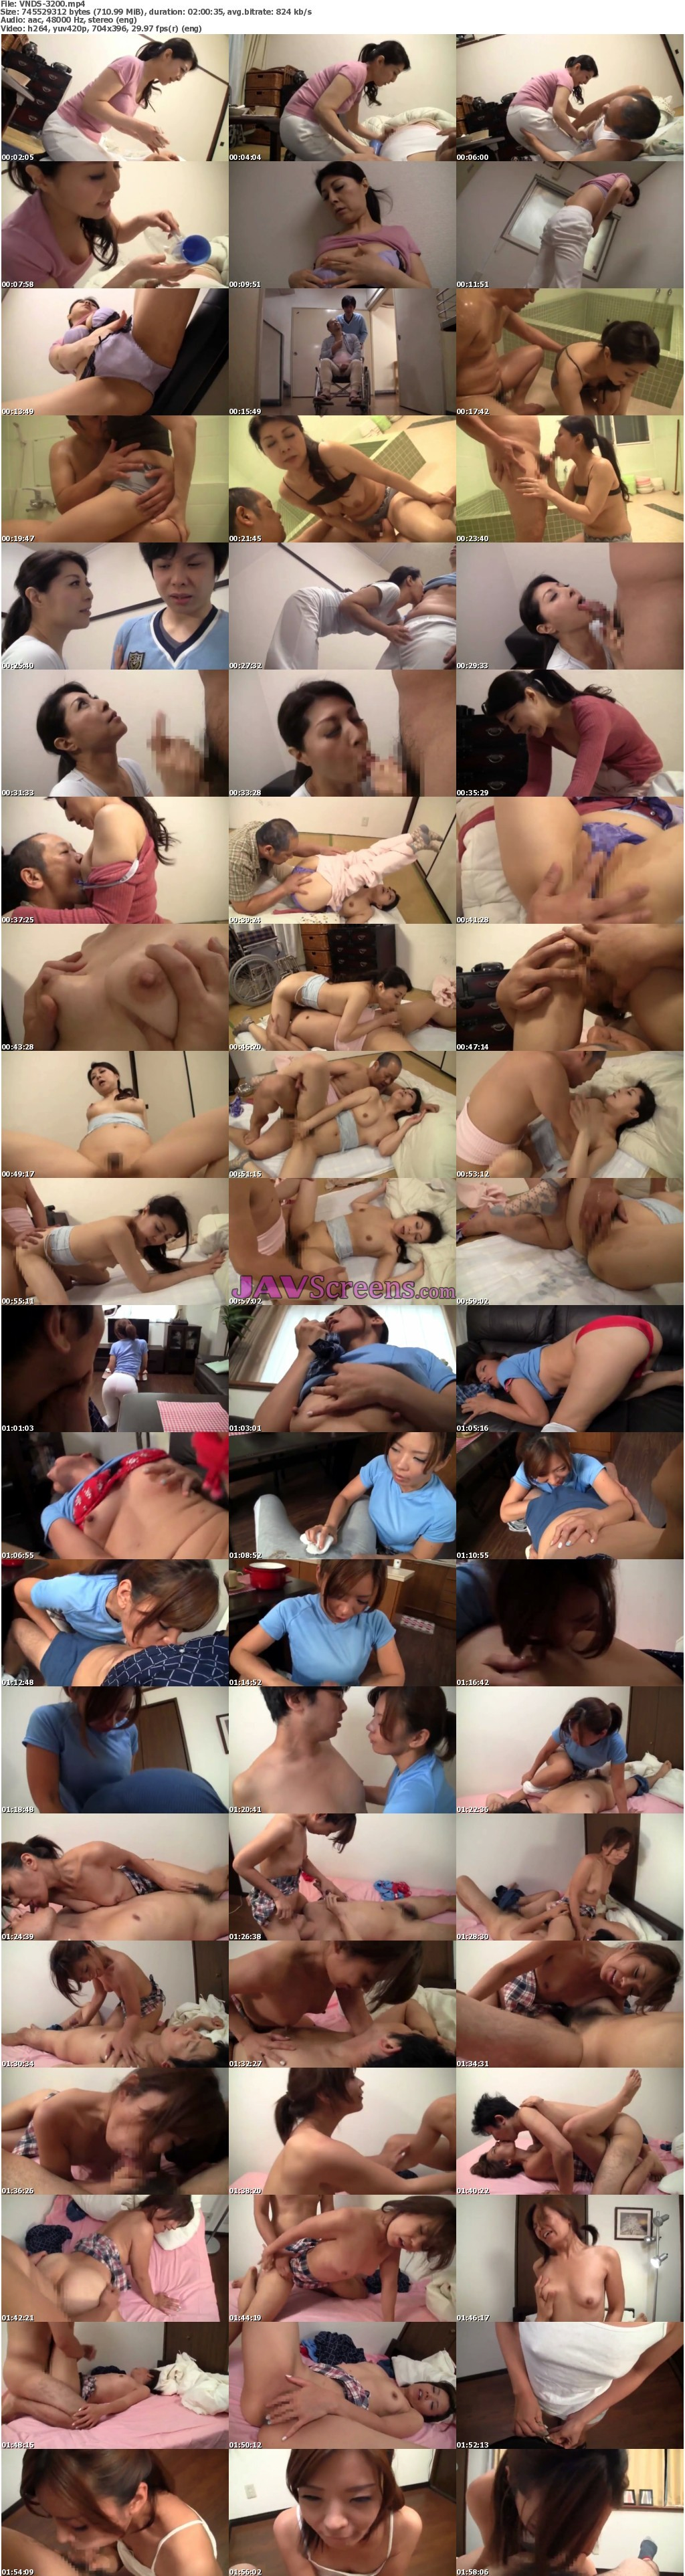 VNDS-3200.jpg - JAV Screenshot